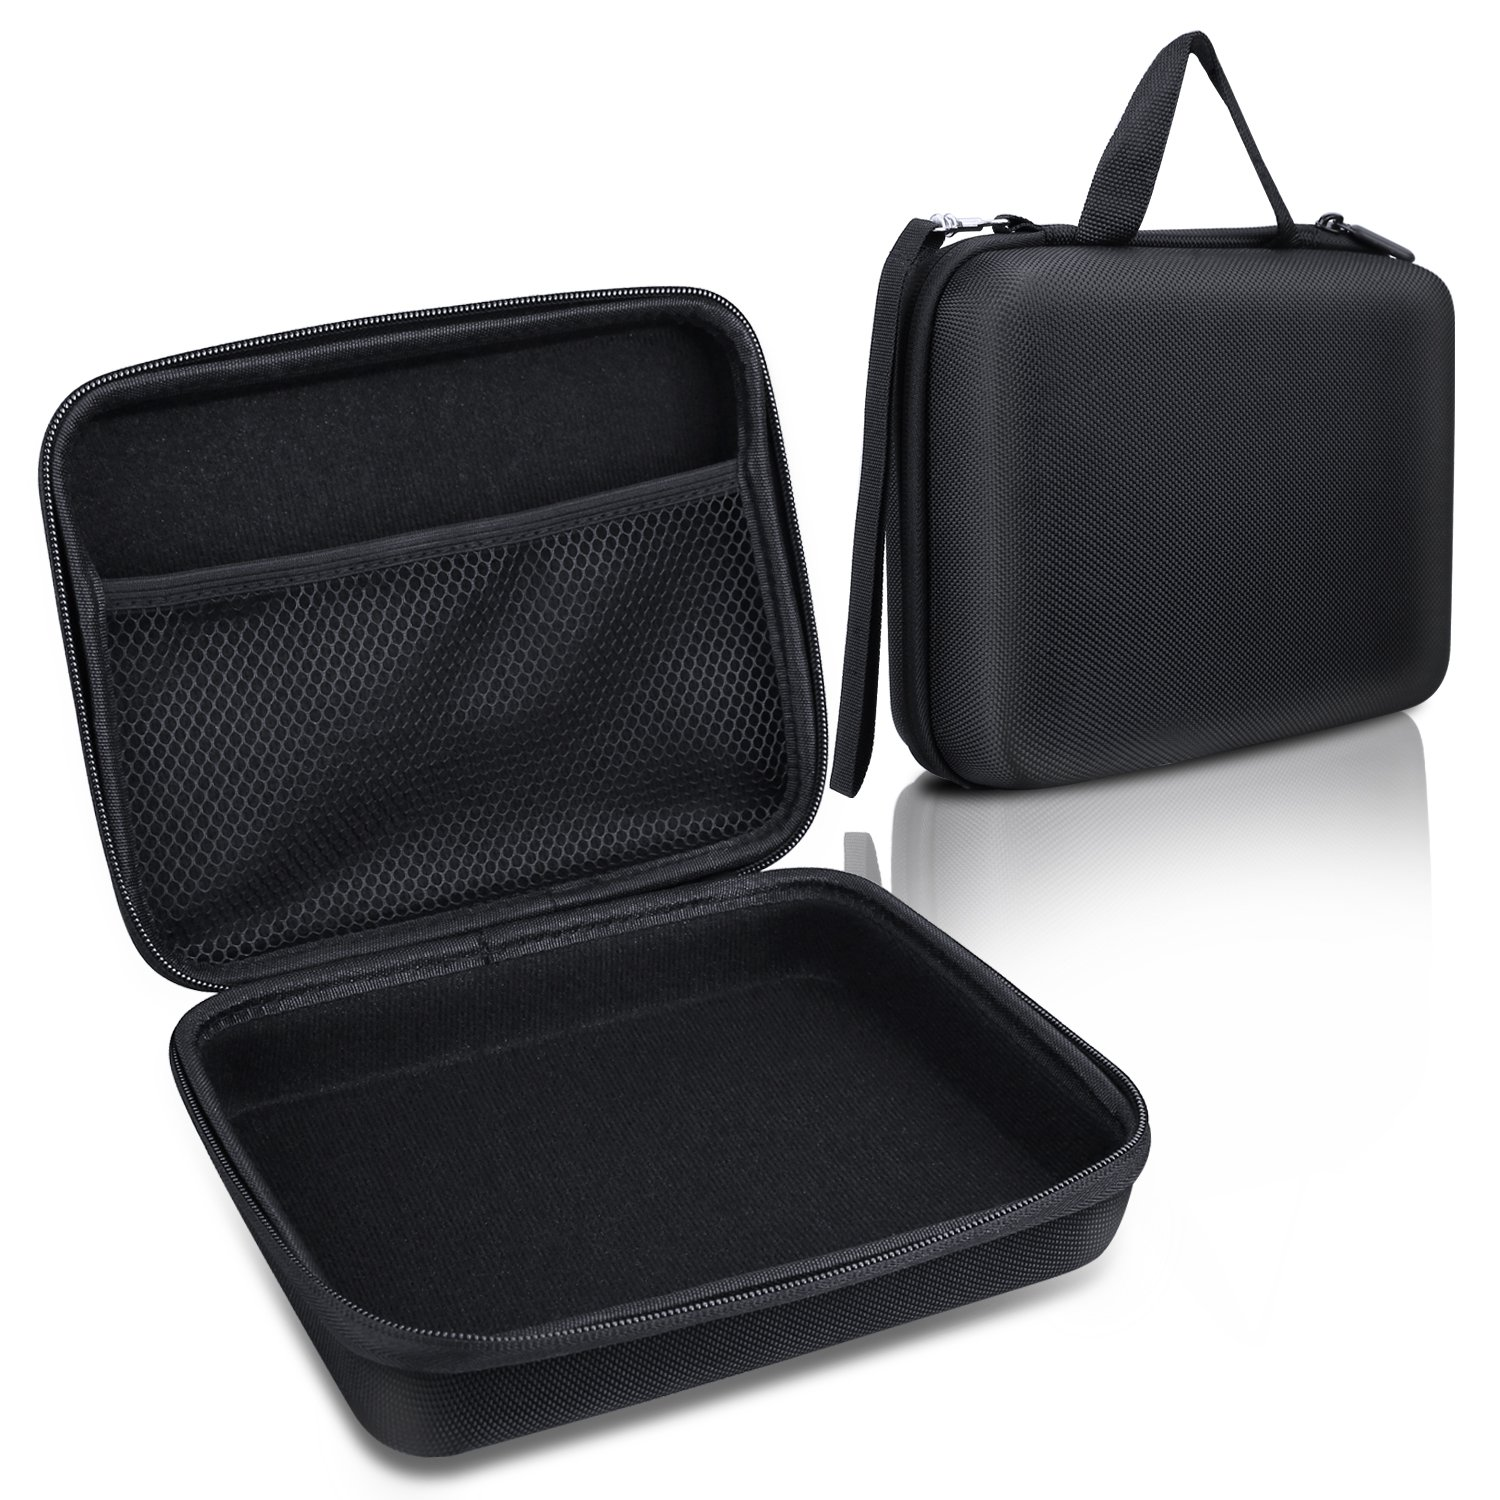 Borescope Endoscope Camera Case Bag for Depstech USB, WiFi Endoscope, also for Goodan, Shekar, Pancellent, Fantronics, Sokos, BlueFire,with pockets for accessories like USB ,Hooks,Side View Mirror AttoPro Direct EC-B-M